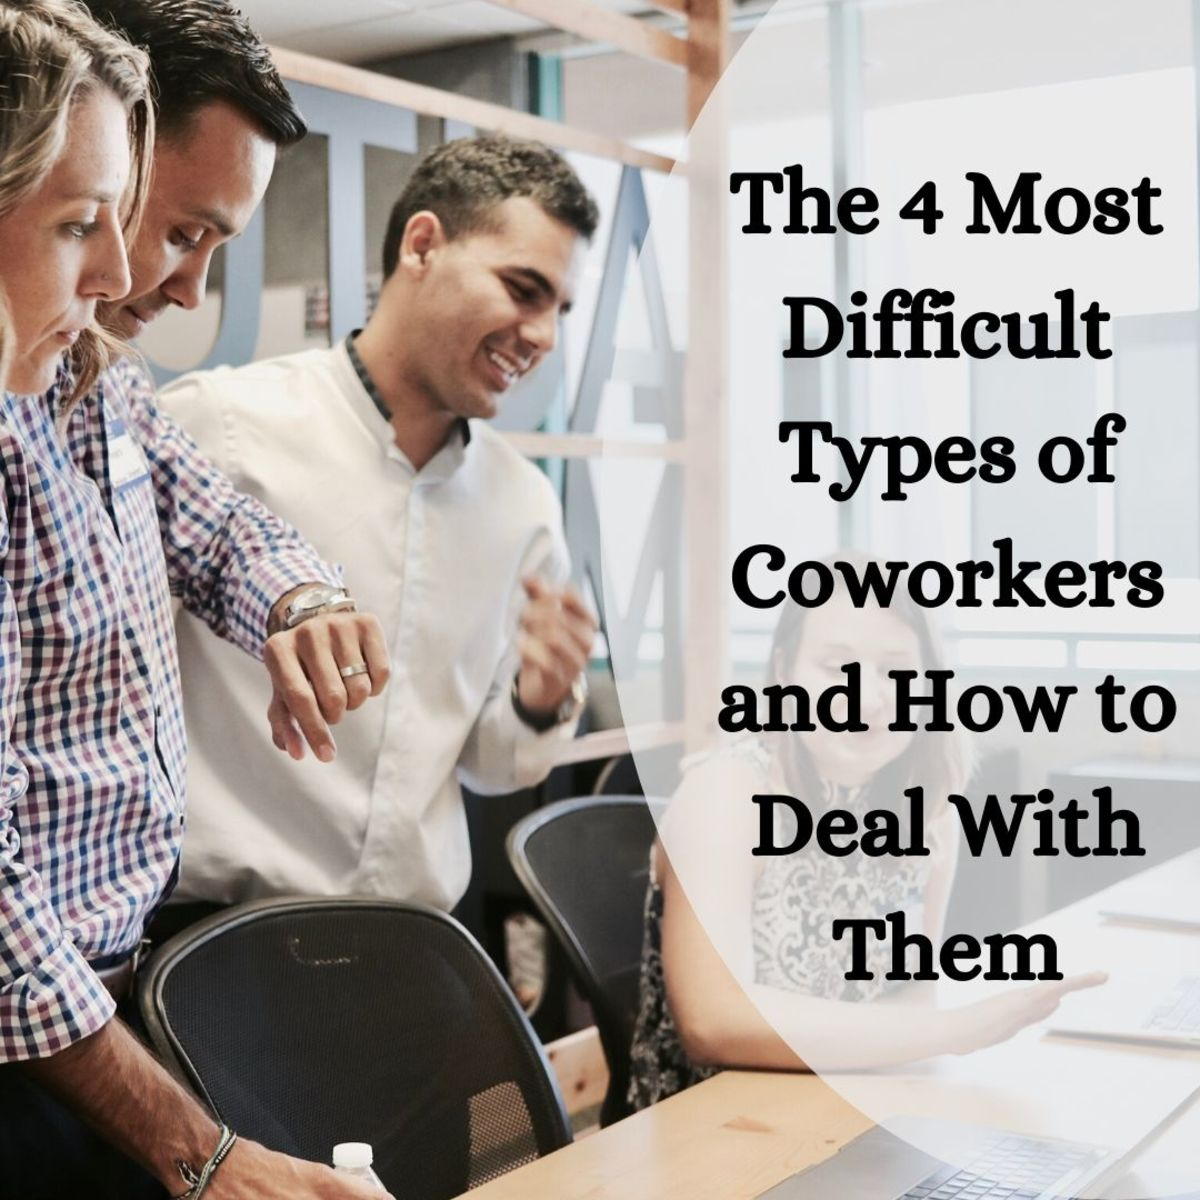 Learn how to deal with the four most challenging coworker personality types.